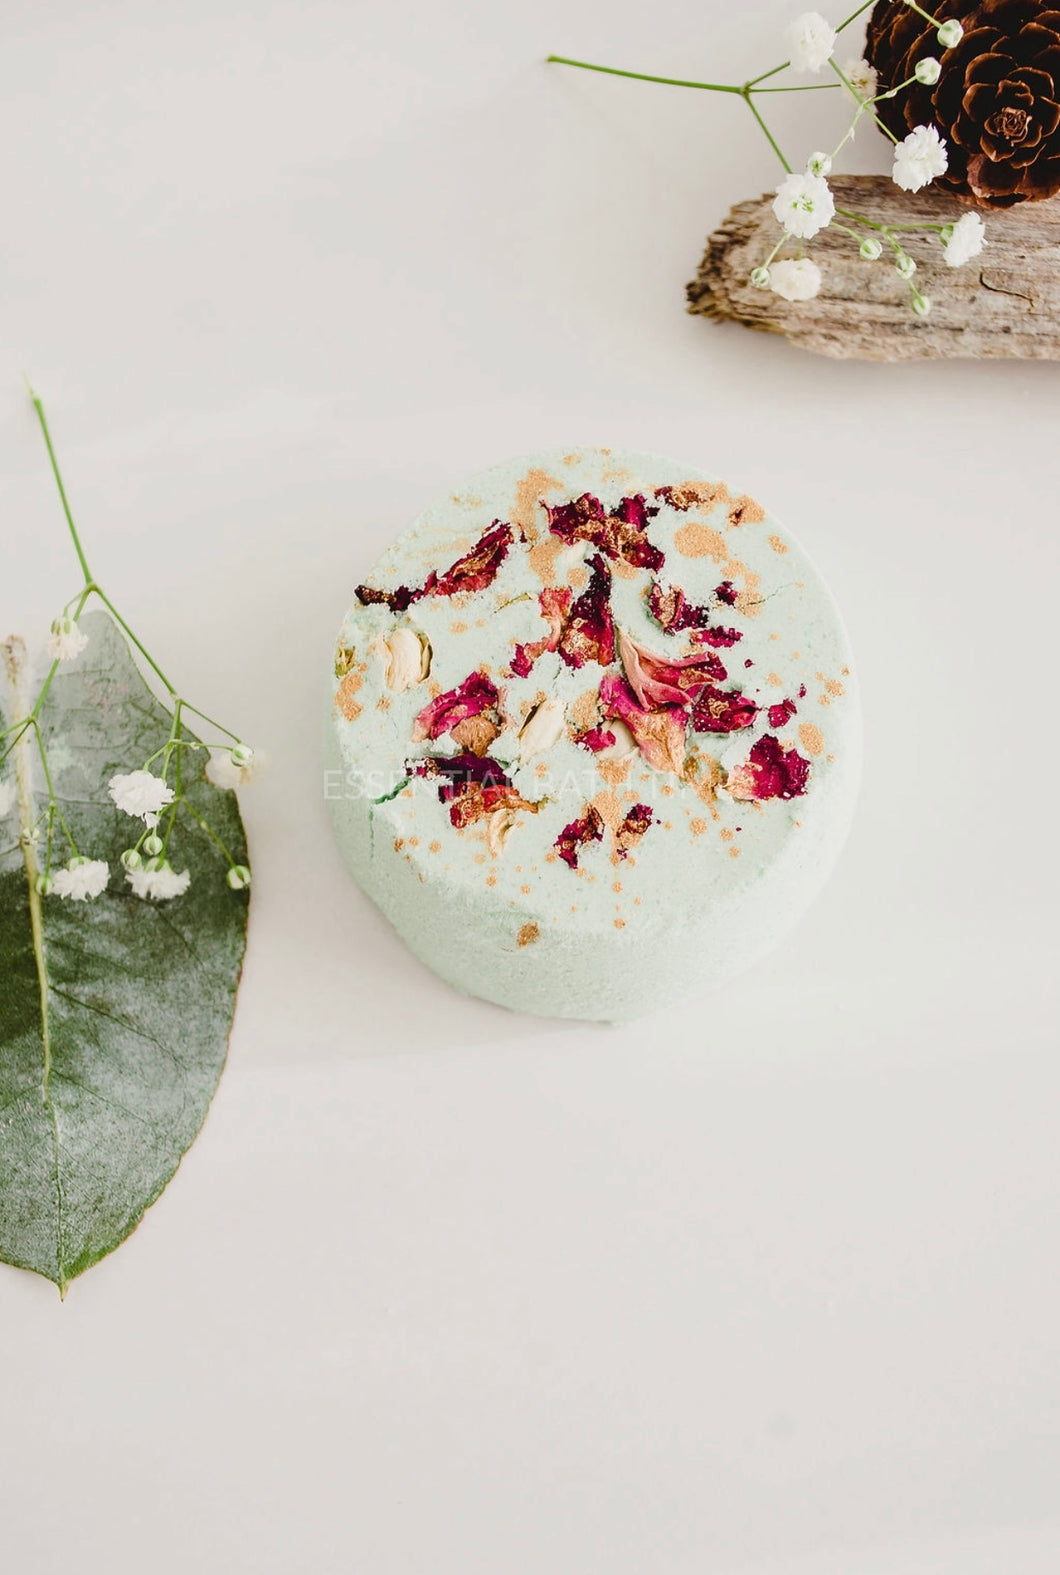 Aromatherapy Bath Bomb - Meditation - Essential bath time